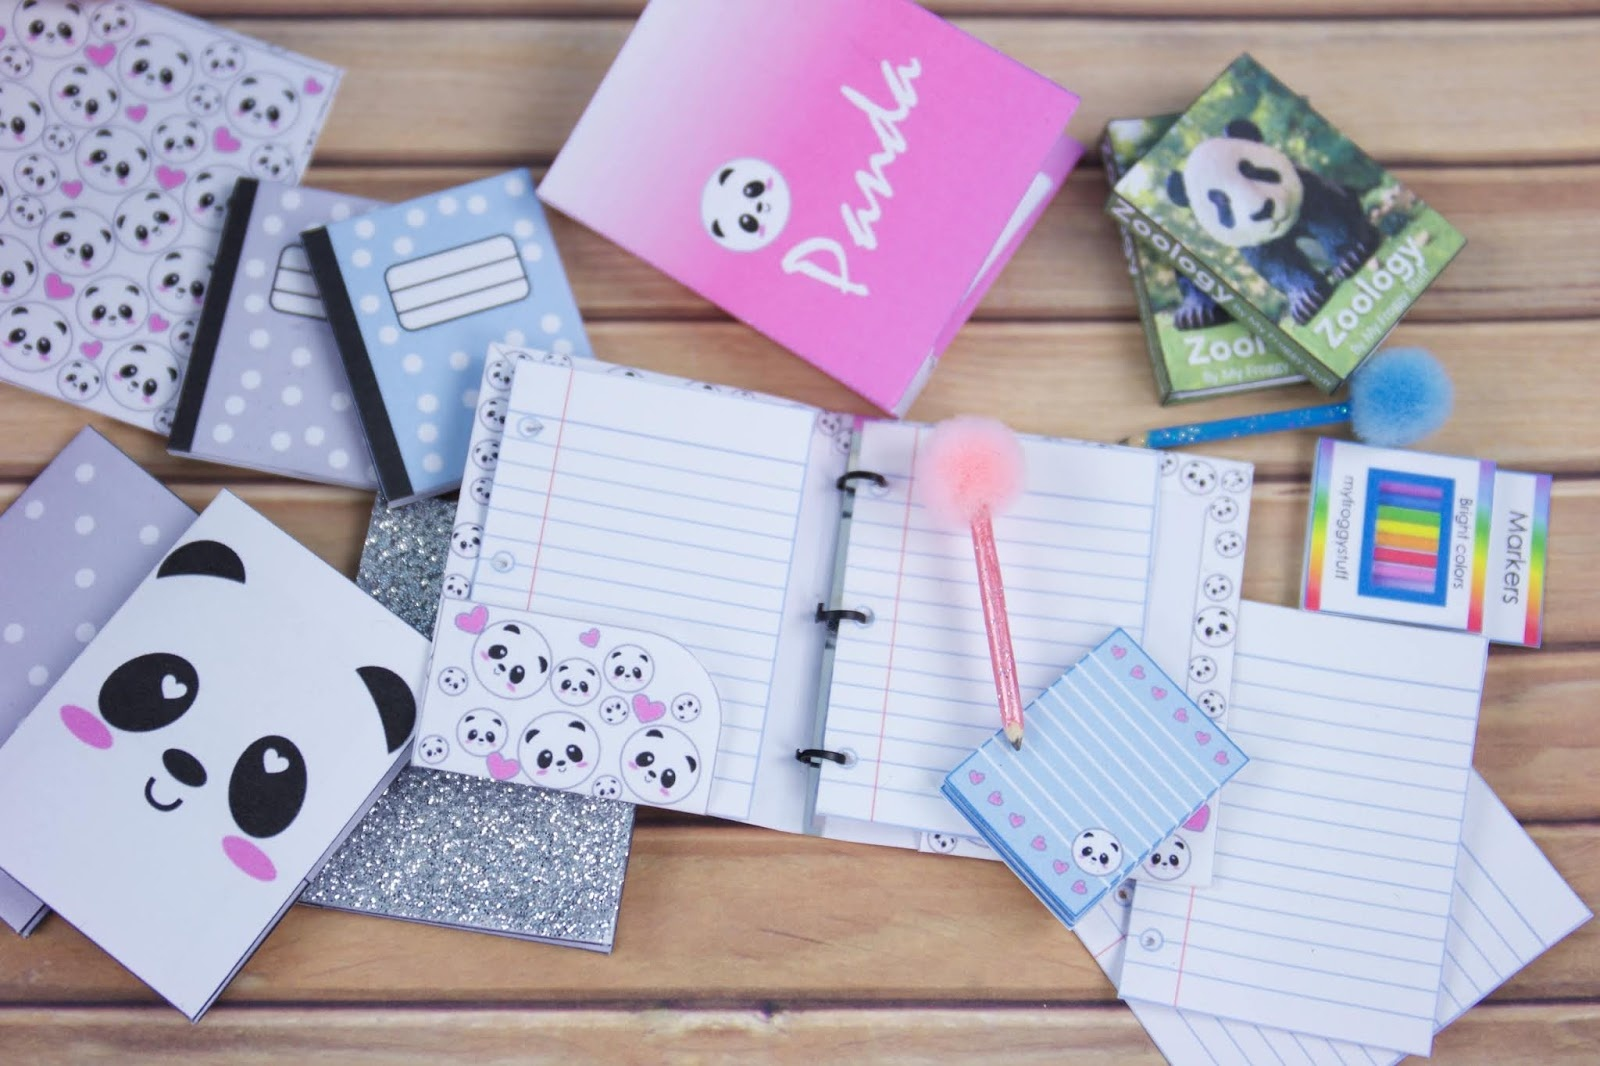 My Froggy Stuff: Back To School : Diy Panda School Supplies Free - My Froggy Stuff Blogspot Com Free Printables